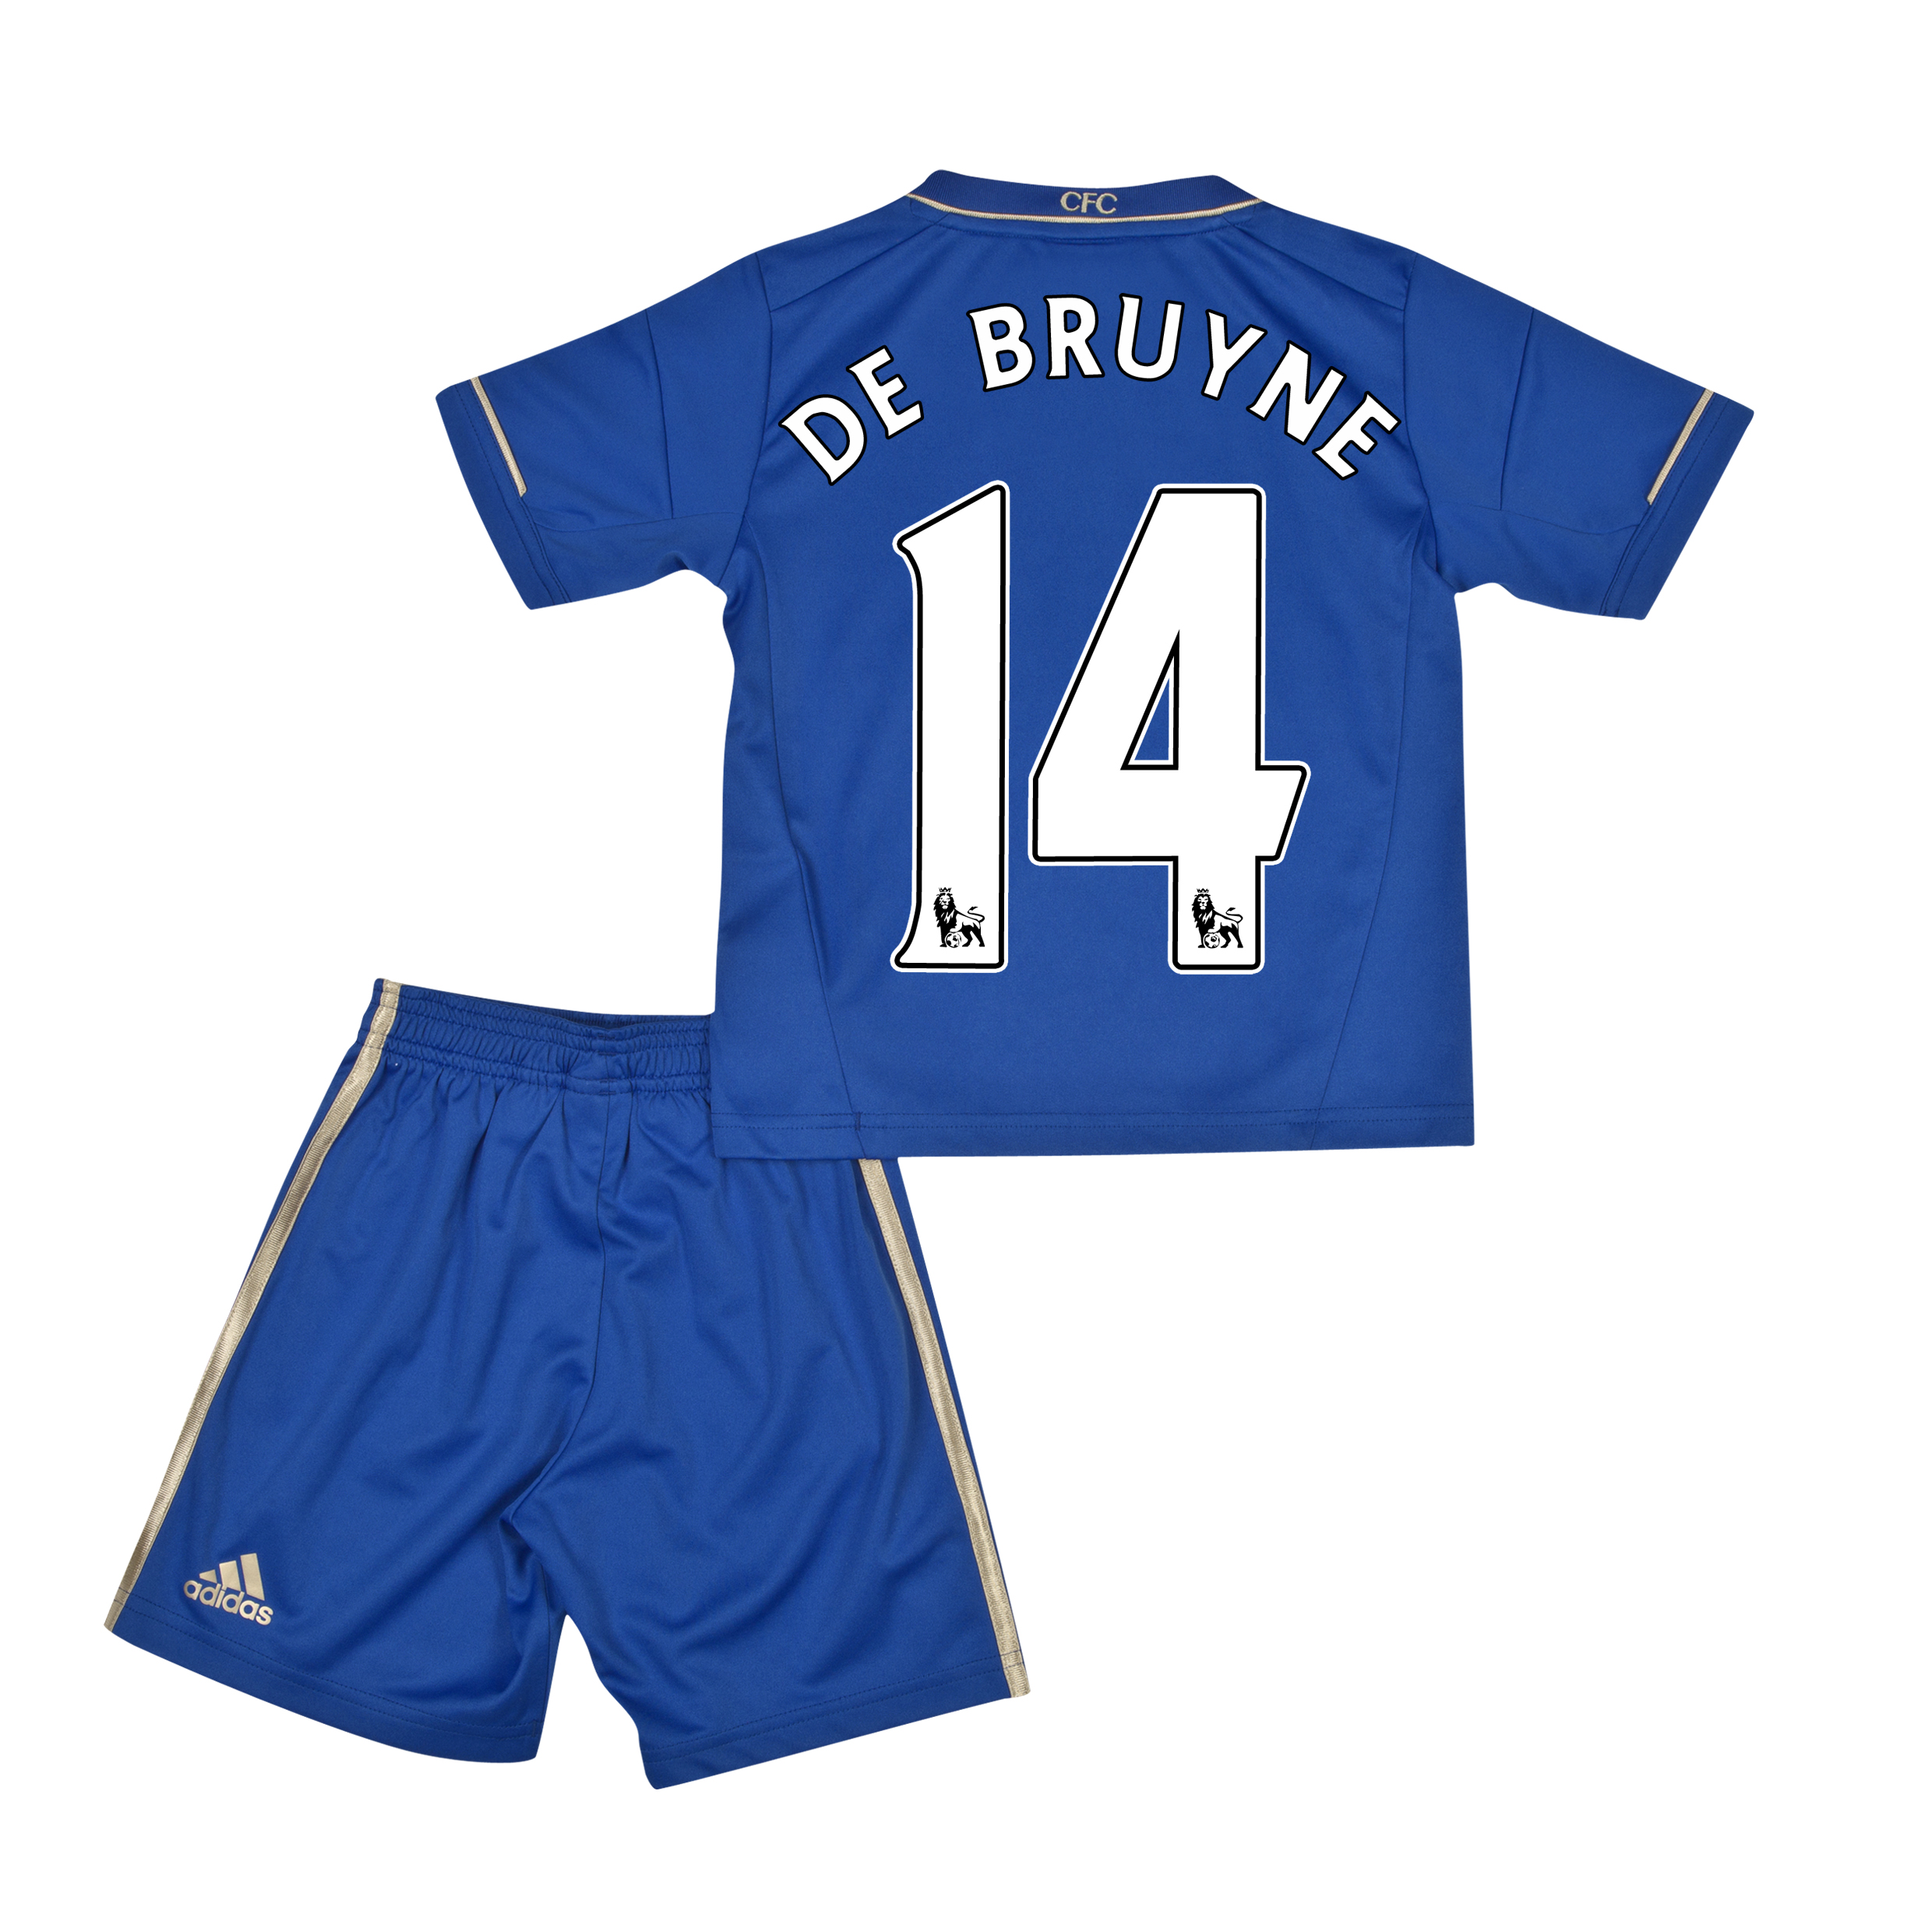 Chelsea Home Mini Kit 2012/13 with De Bruyne 14 printing